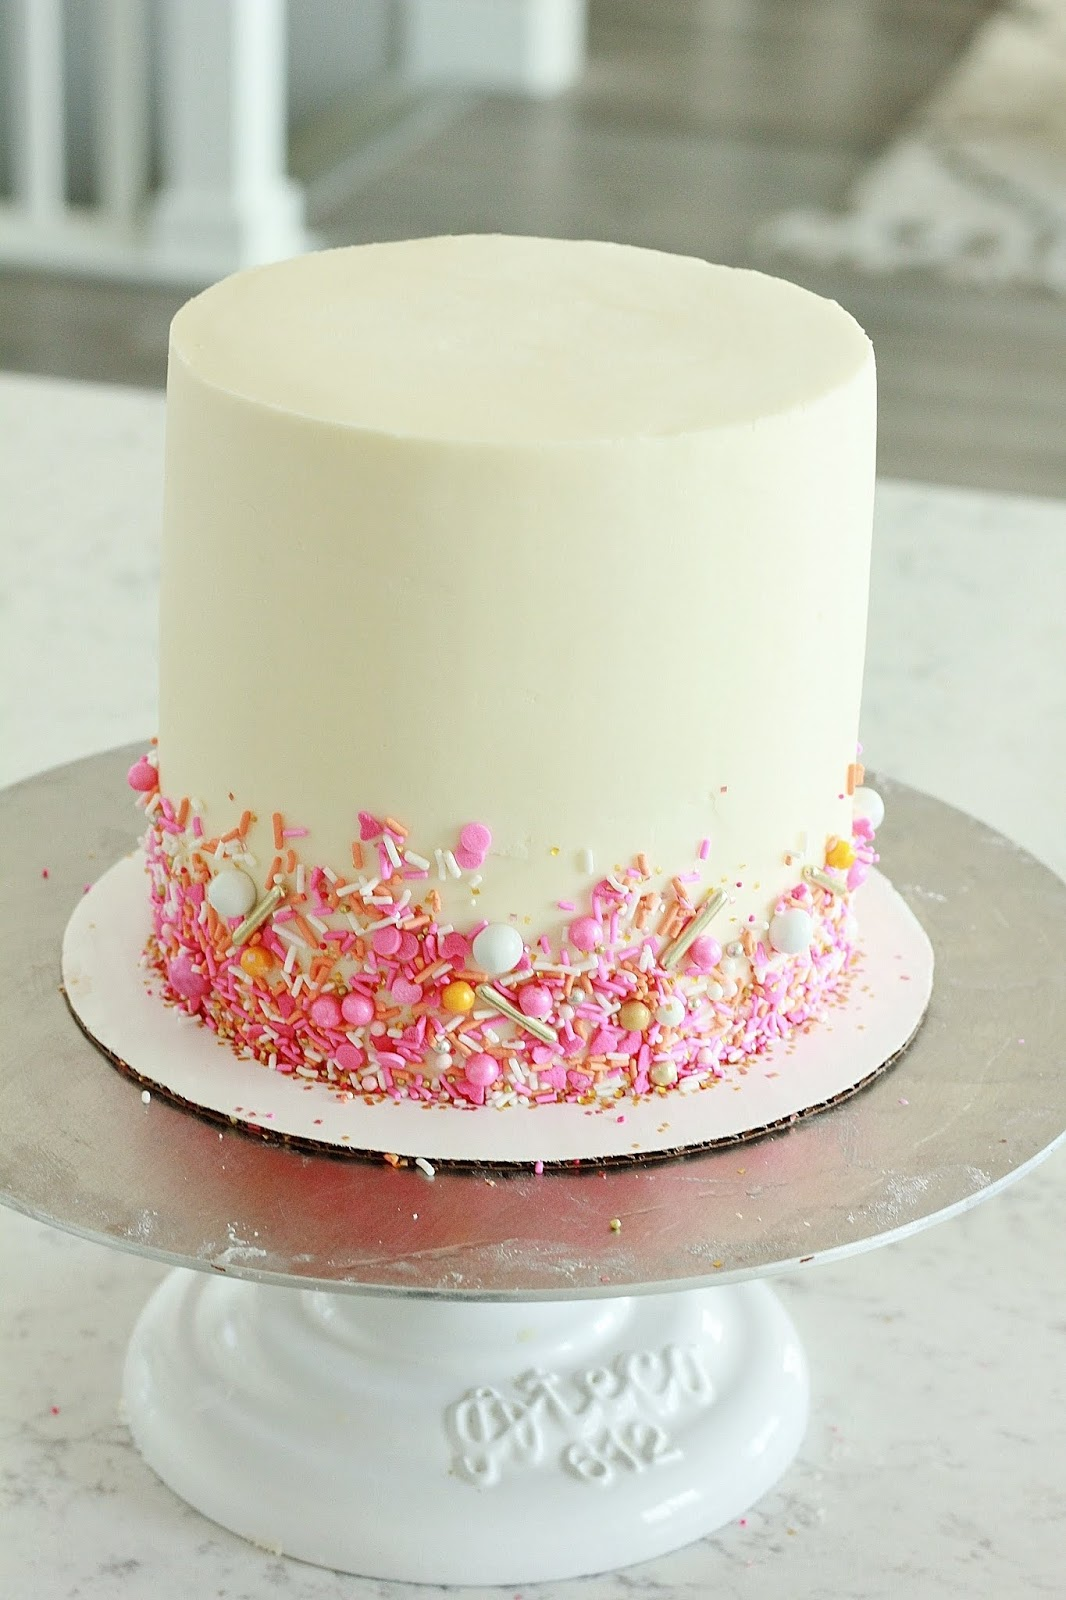 Candy Melt Daisy Cake - Baking with Blondie